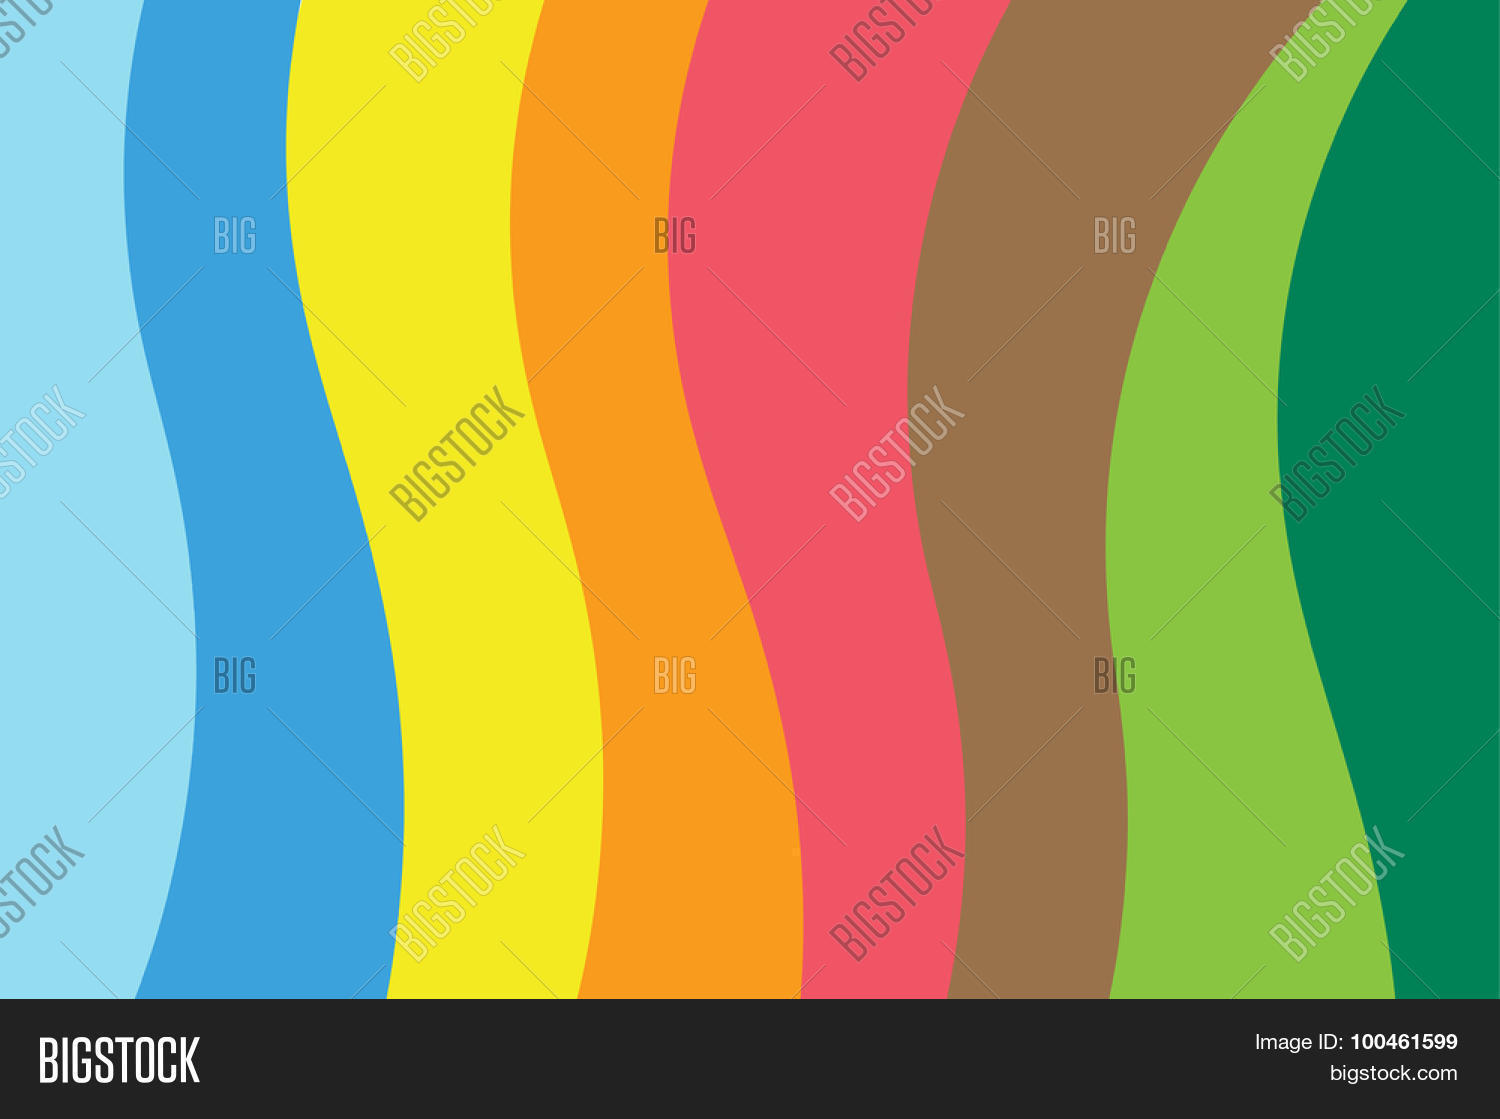 Color Line Design : Abstract line triangle background design vector